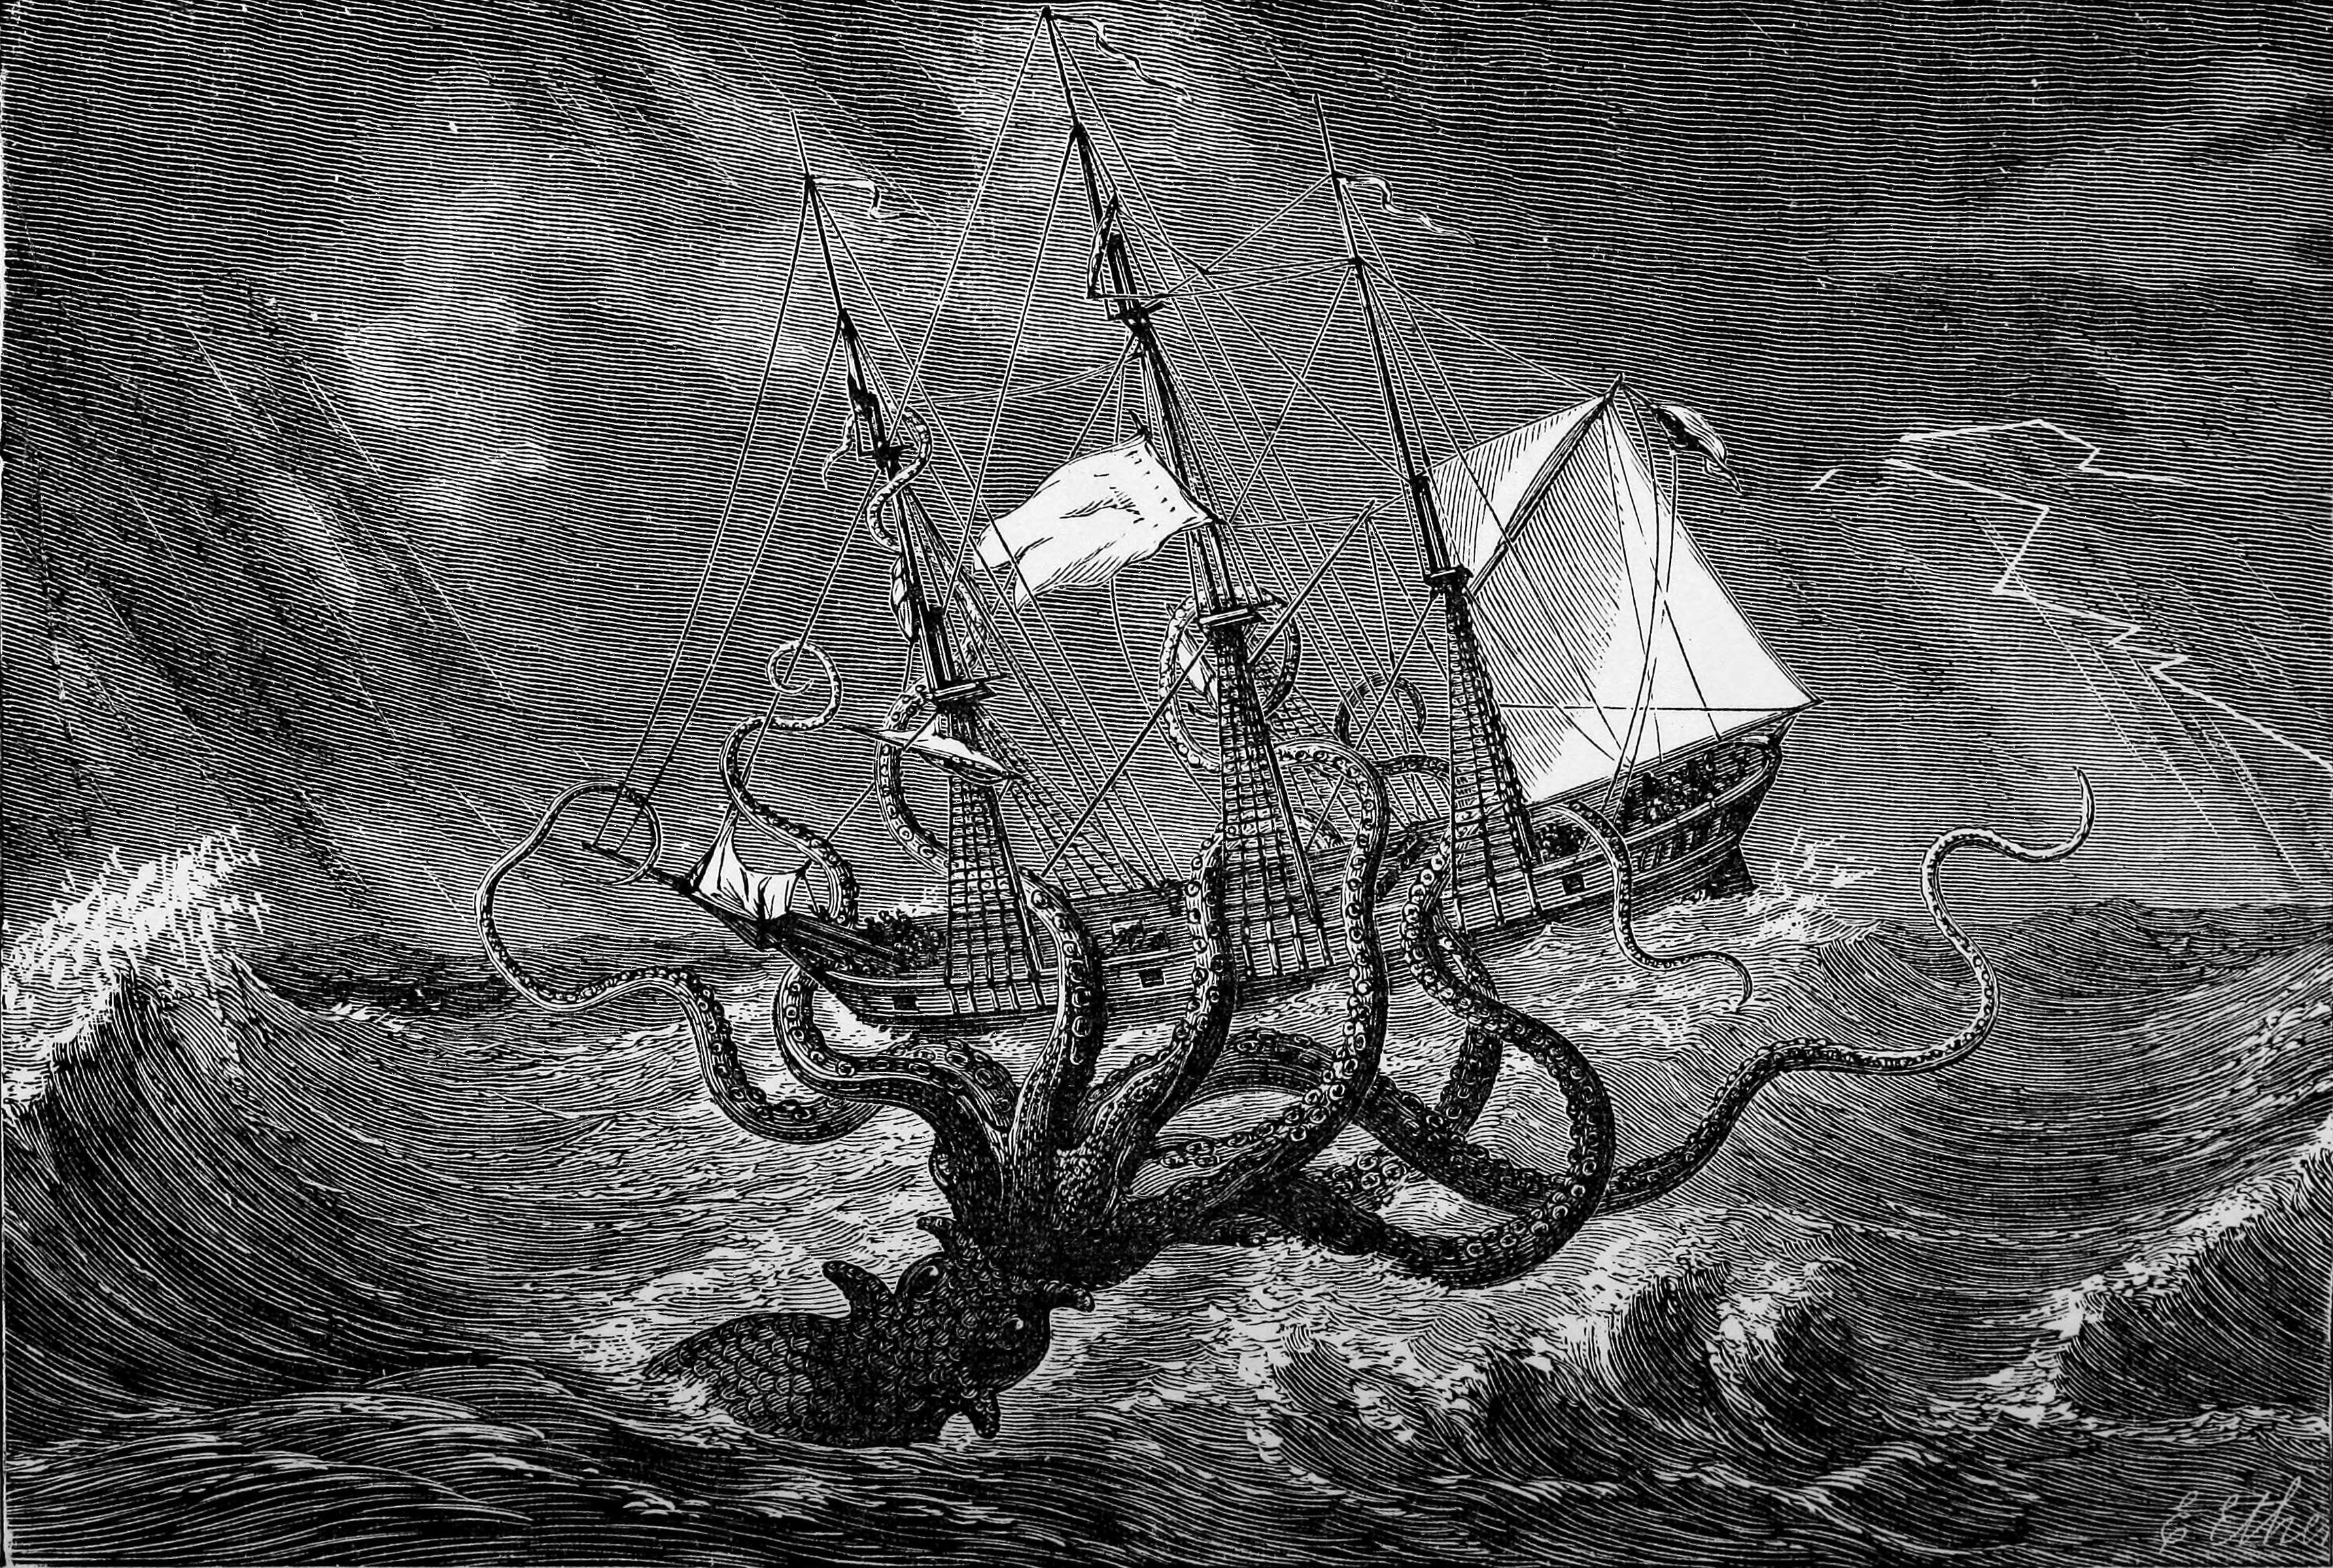 Giant_octopus_attacks_ship.jpg